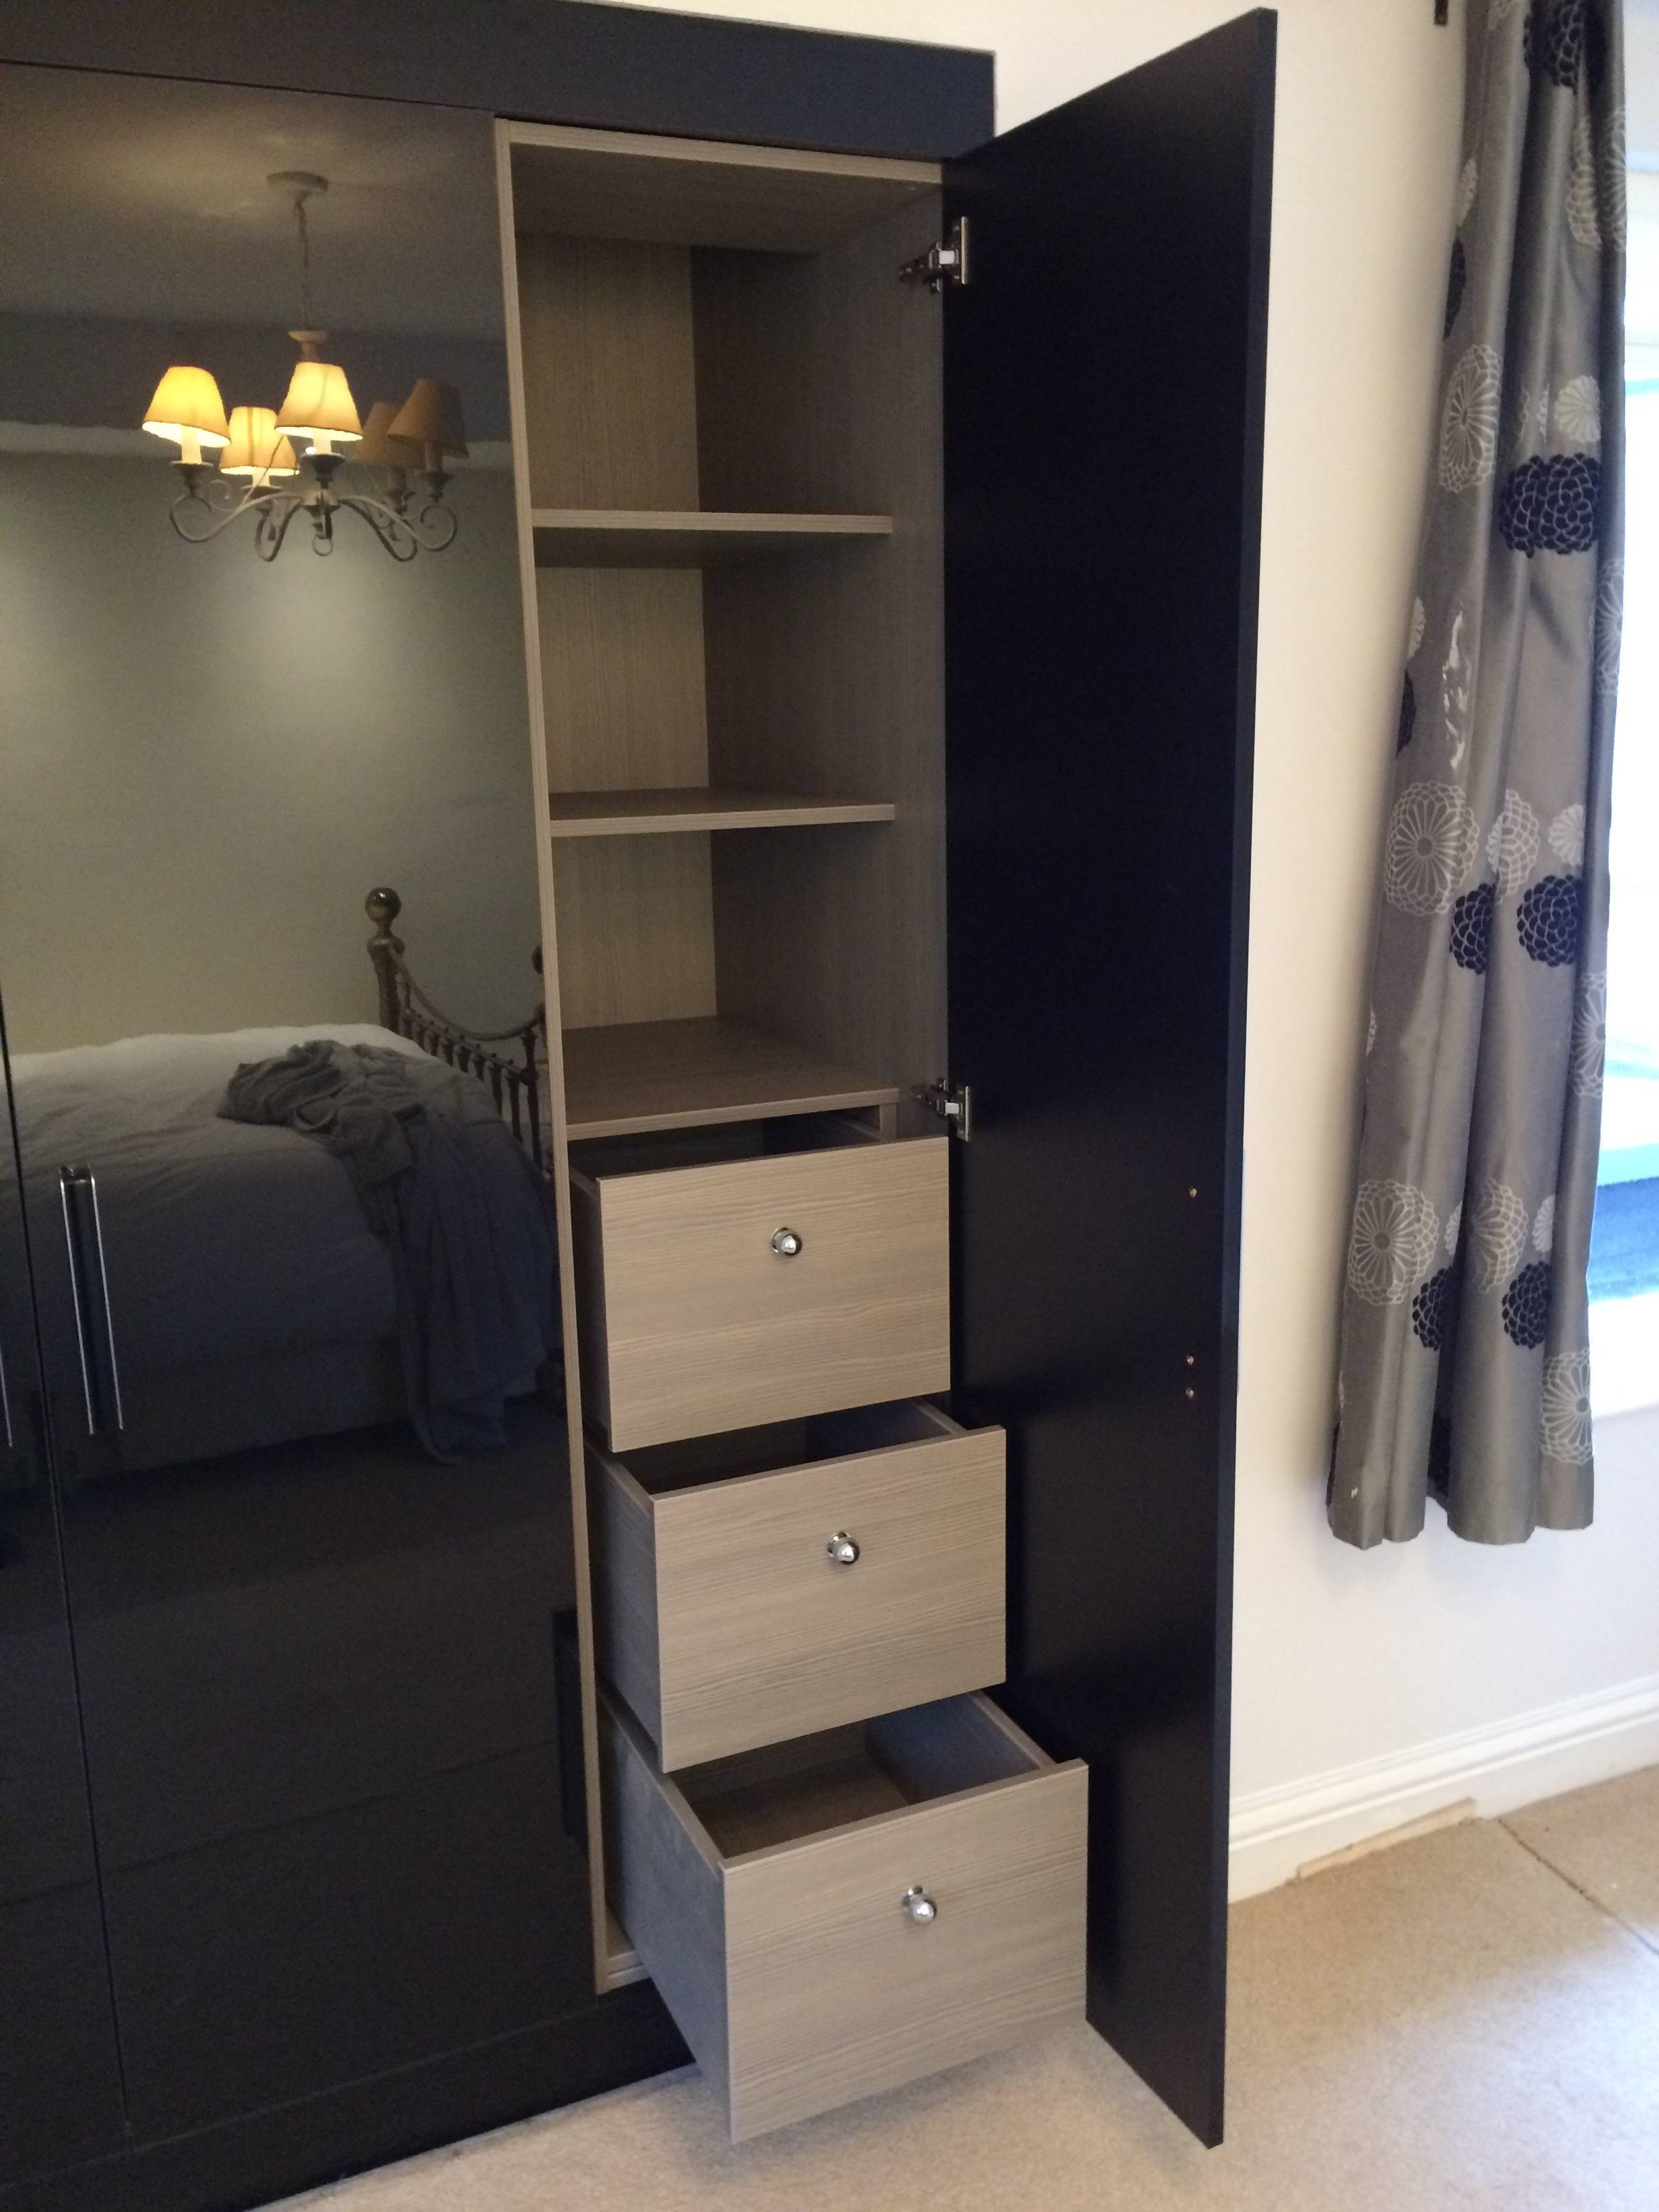 Fitted Black Gloss Wardrobes | The Little Woodshed pertaining to Gloss Black Wardrobes (Image 4 of 15)